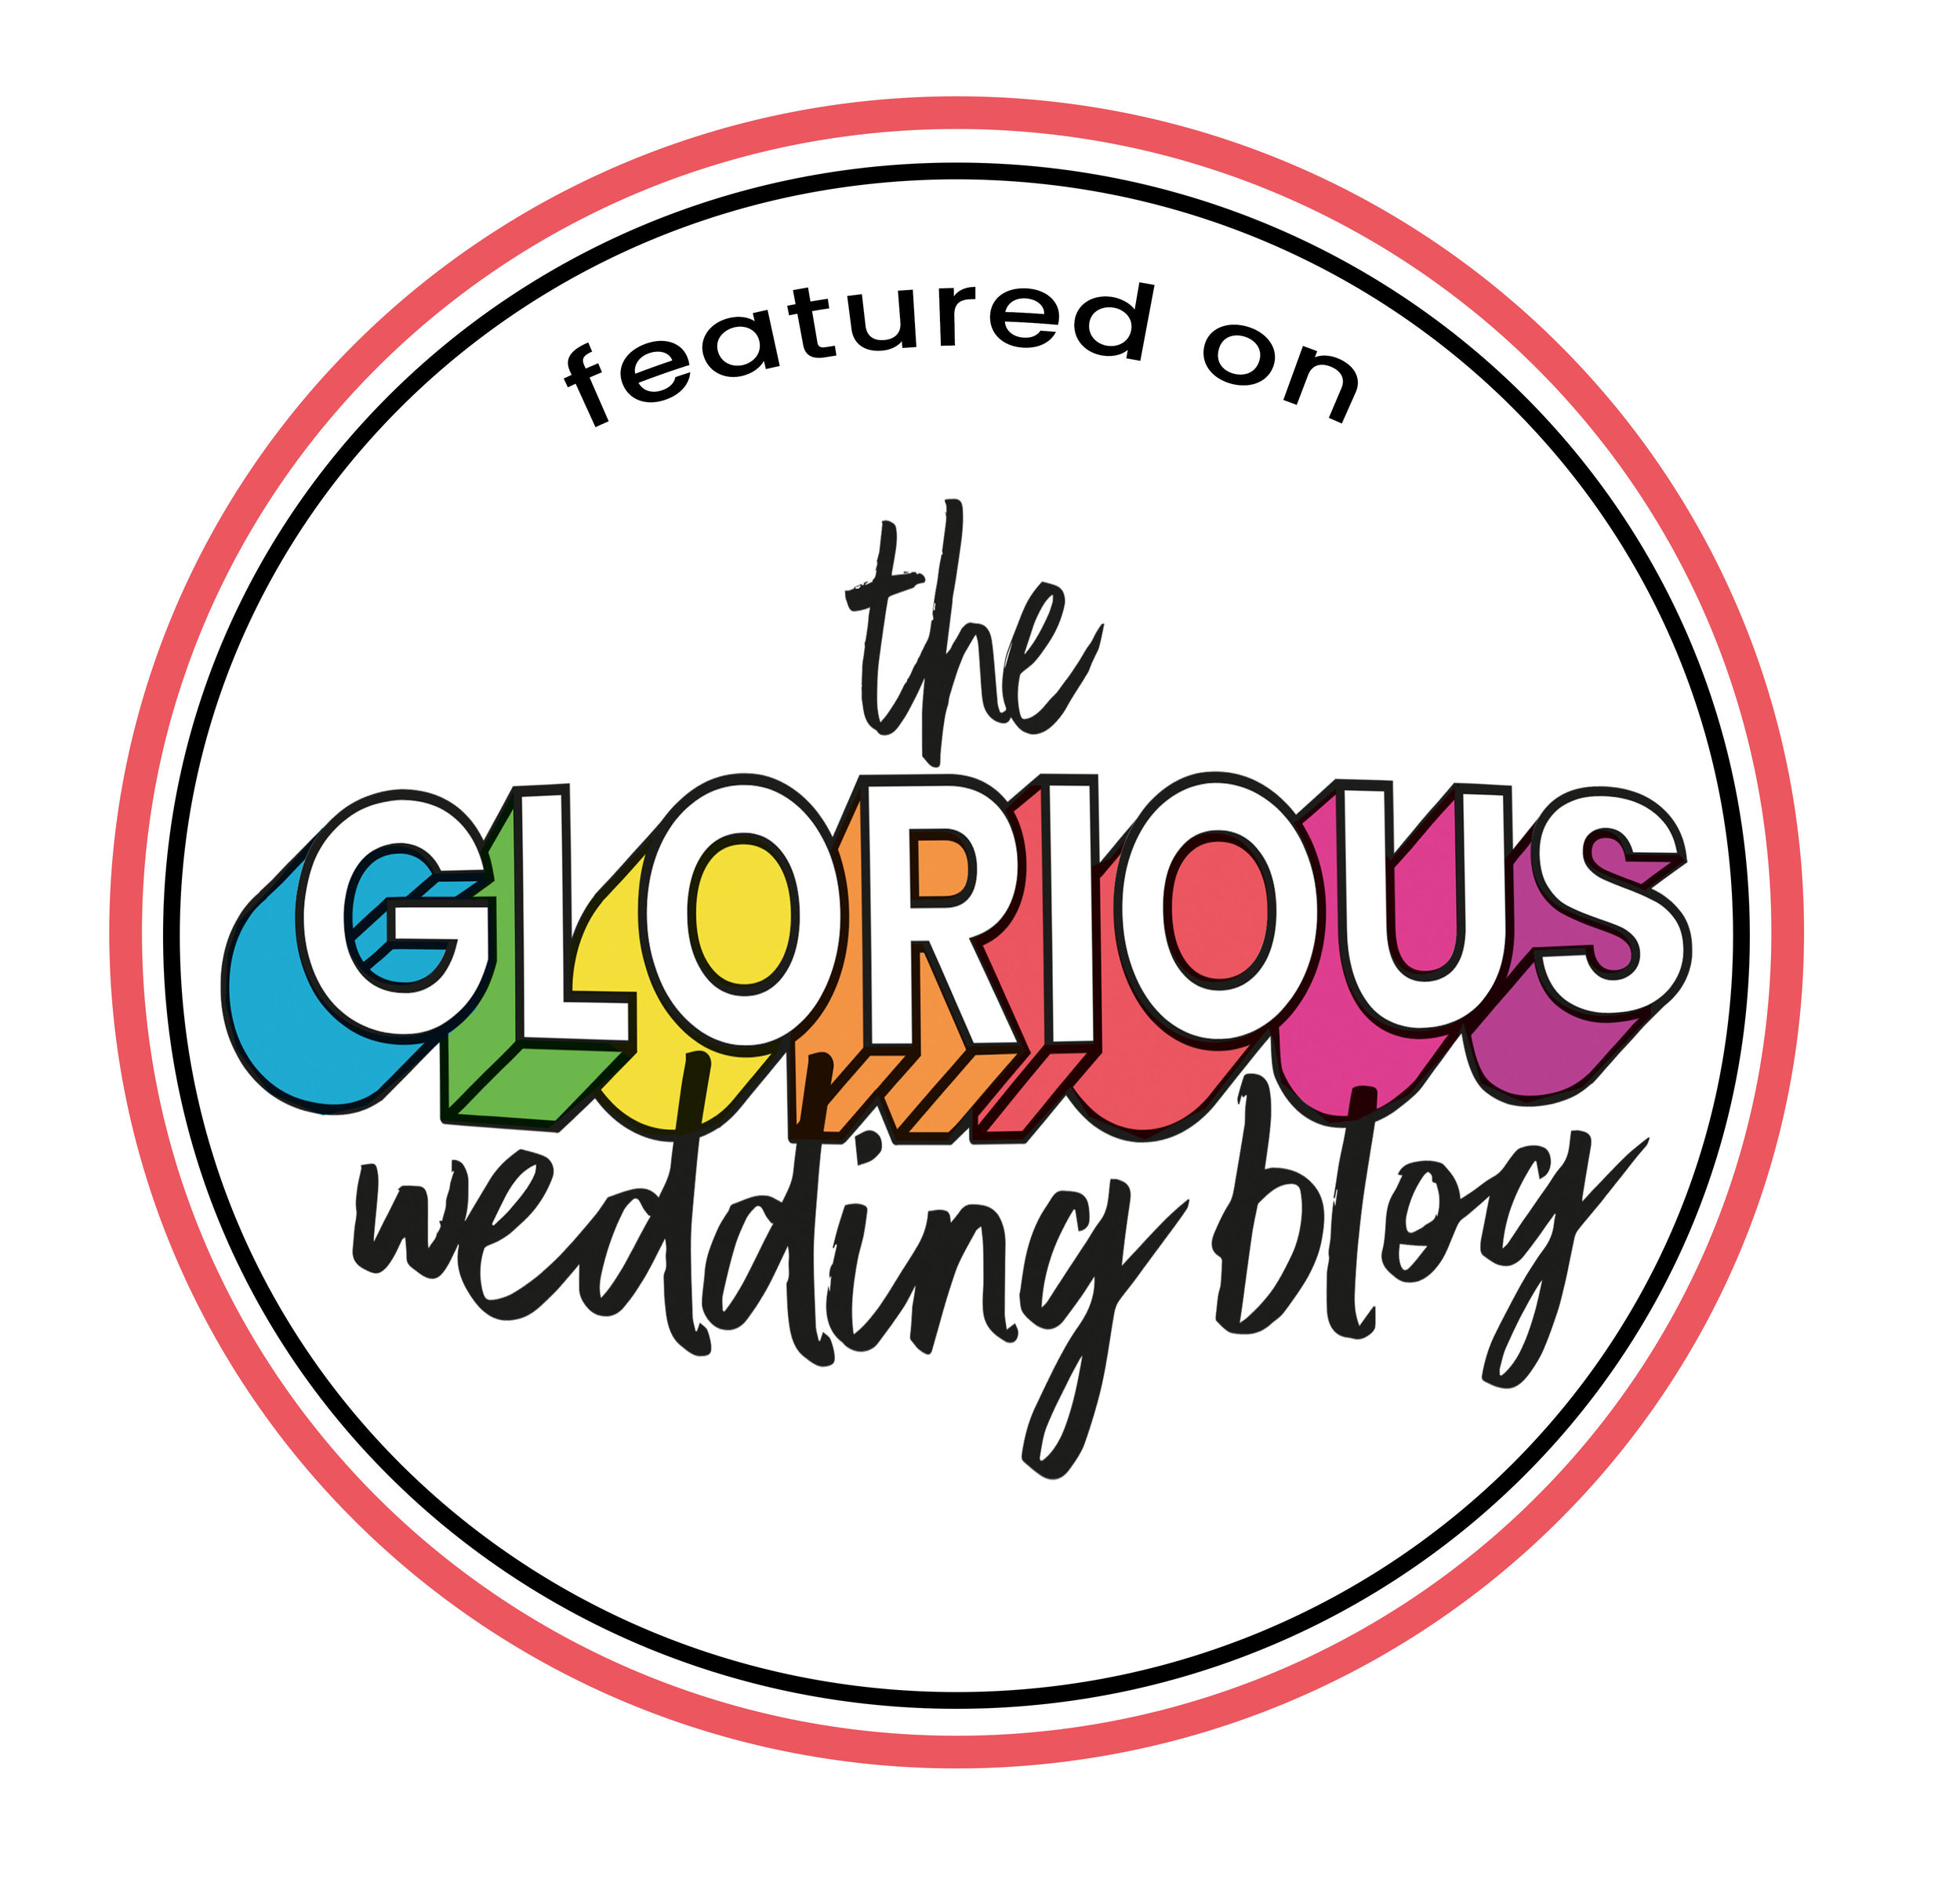 Featured on the glorious wedding blog button, Kieran Bellis Photography